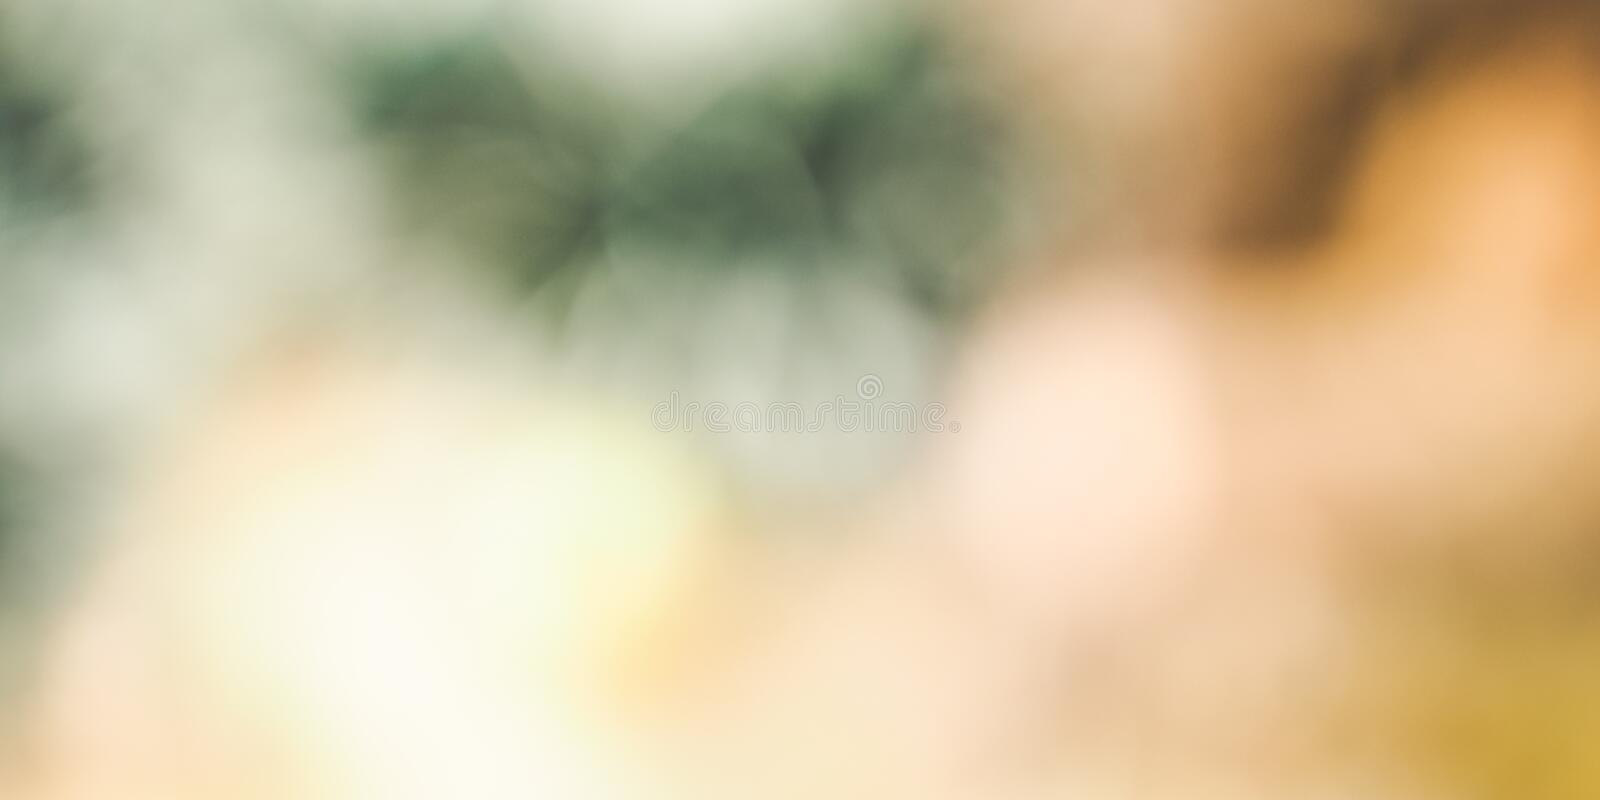 Christmas tree blur abstract background. Green gold royalty free stock image